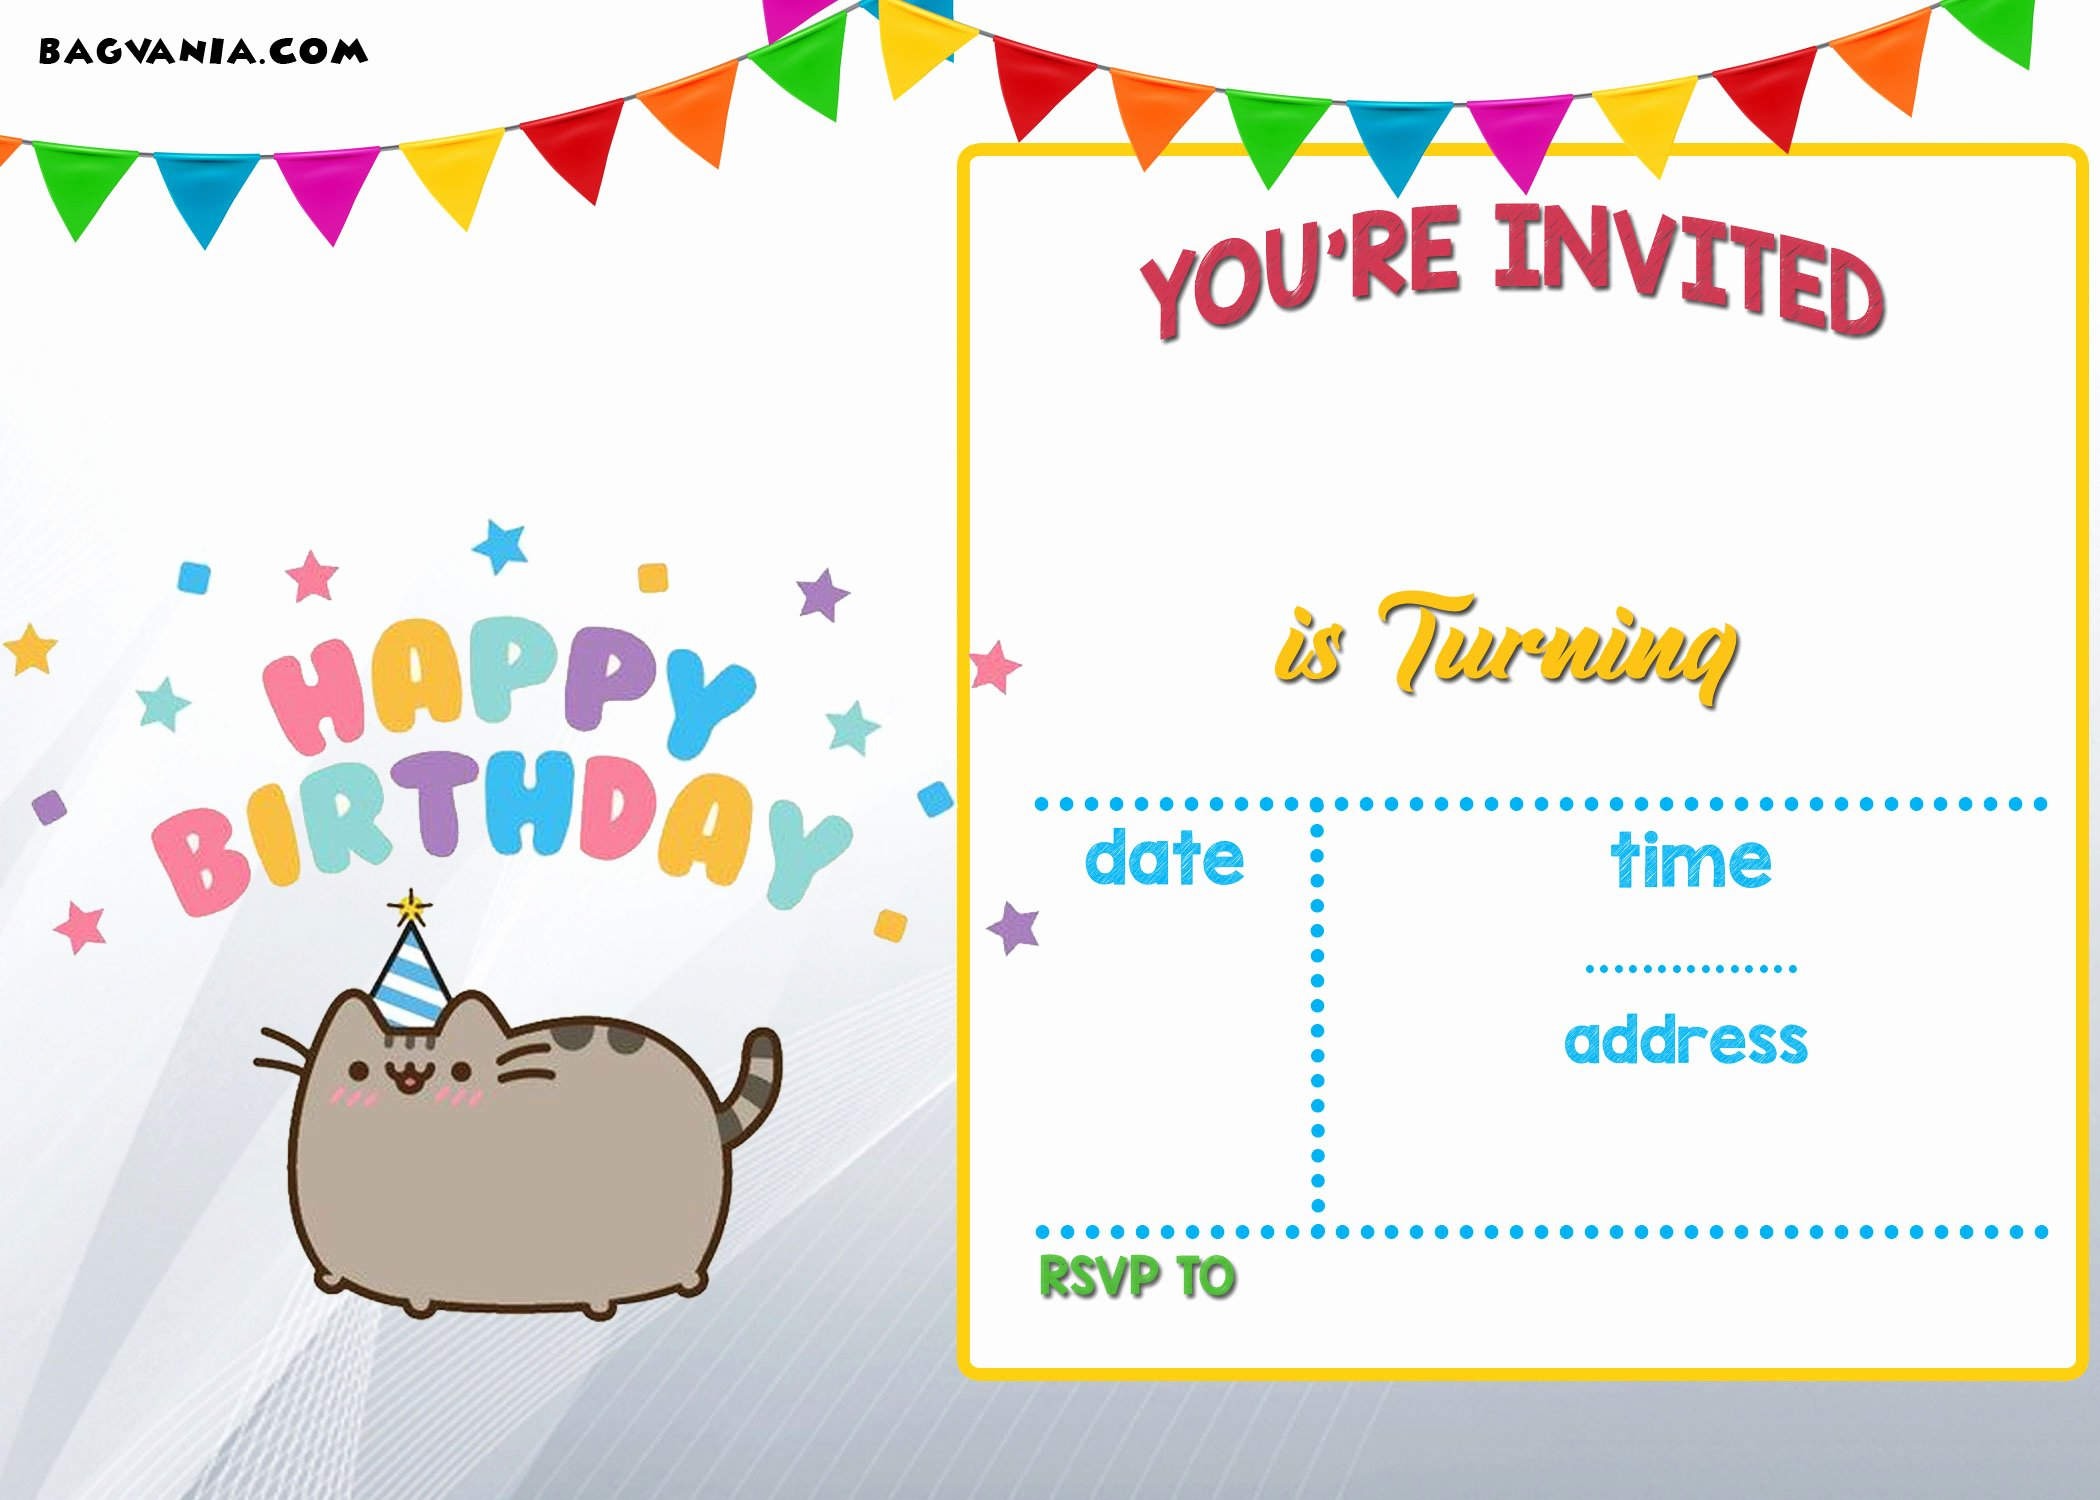 Reception Invitation Template Free Best Of Free Printable Pusheen Birthday Invitation Template — Free